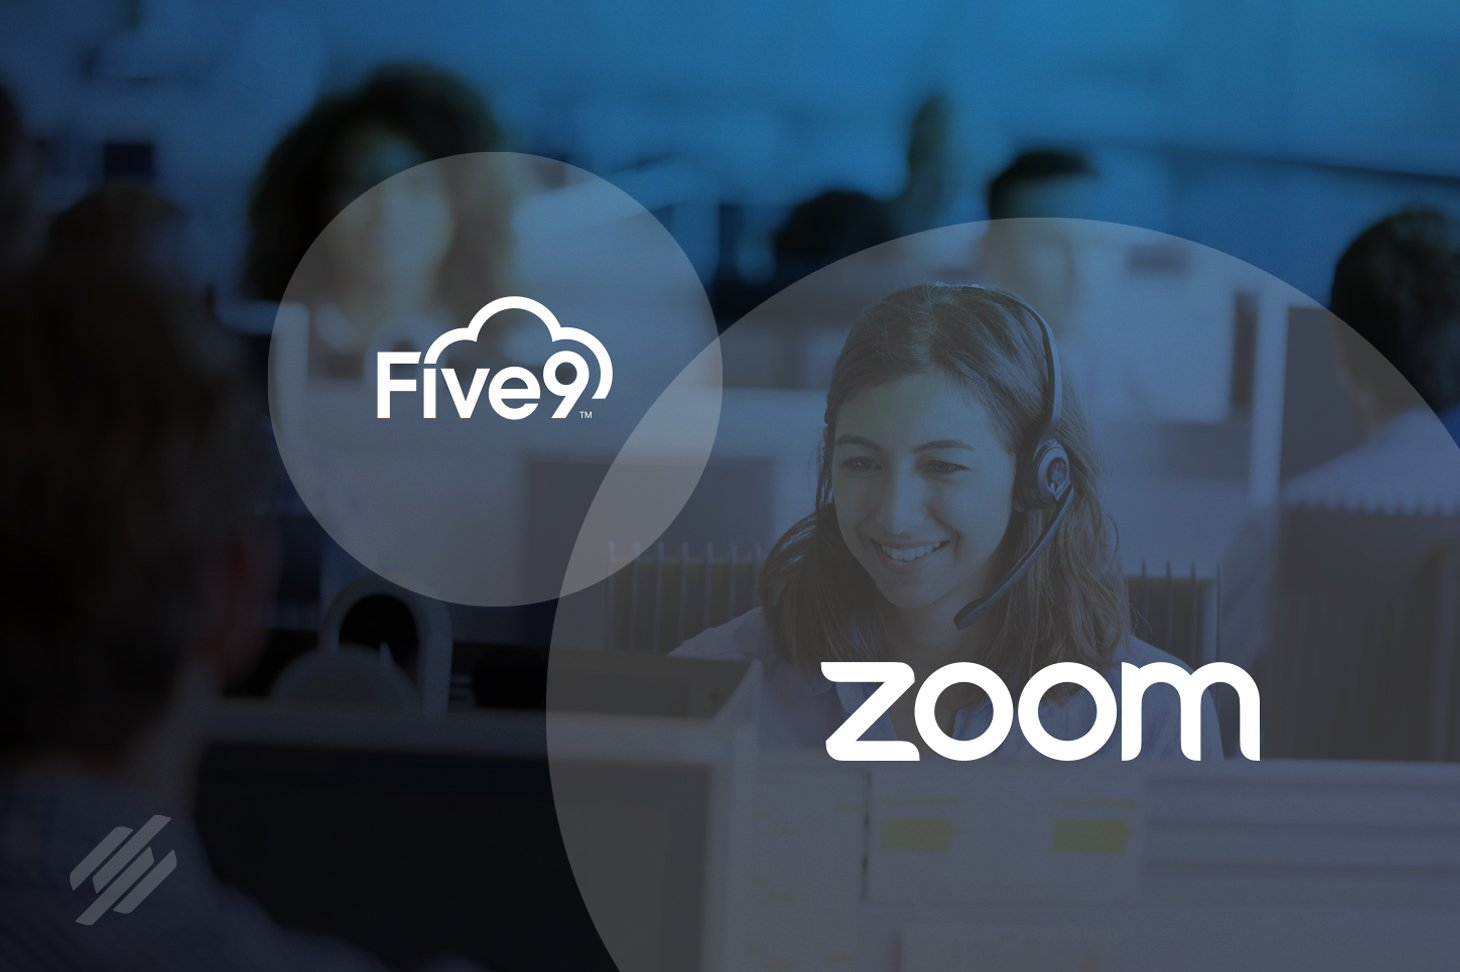 Zoom and Five9 logo